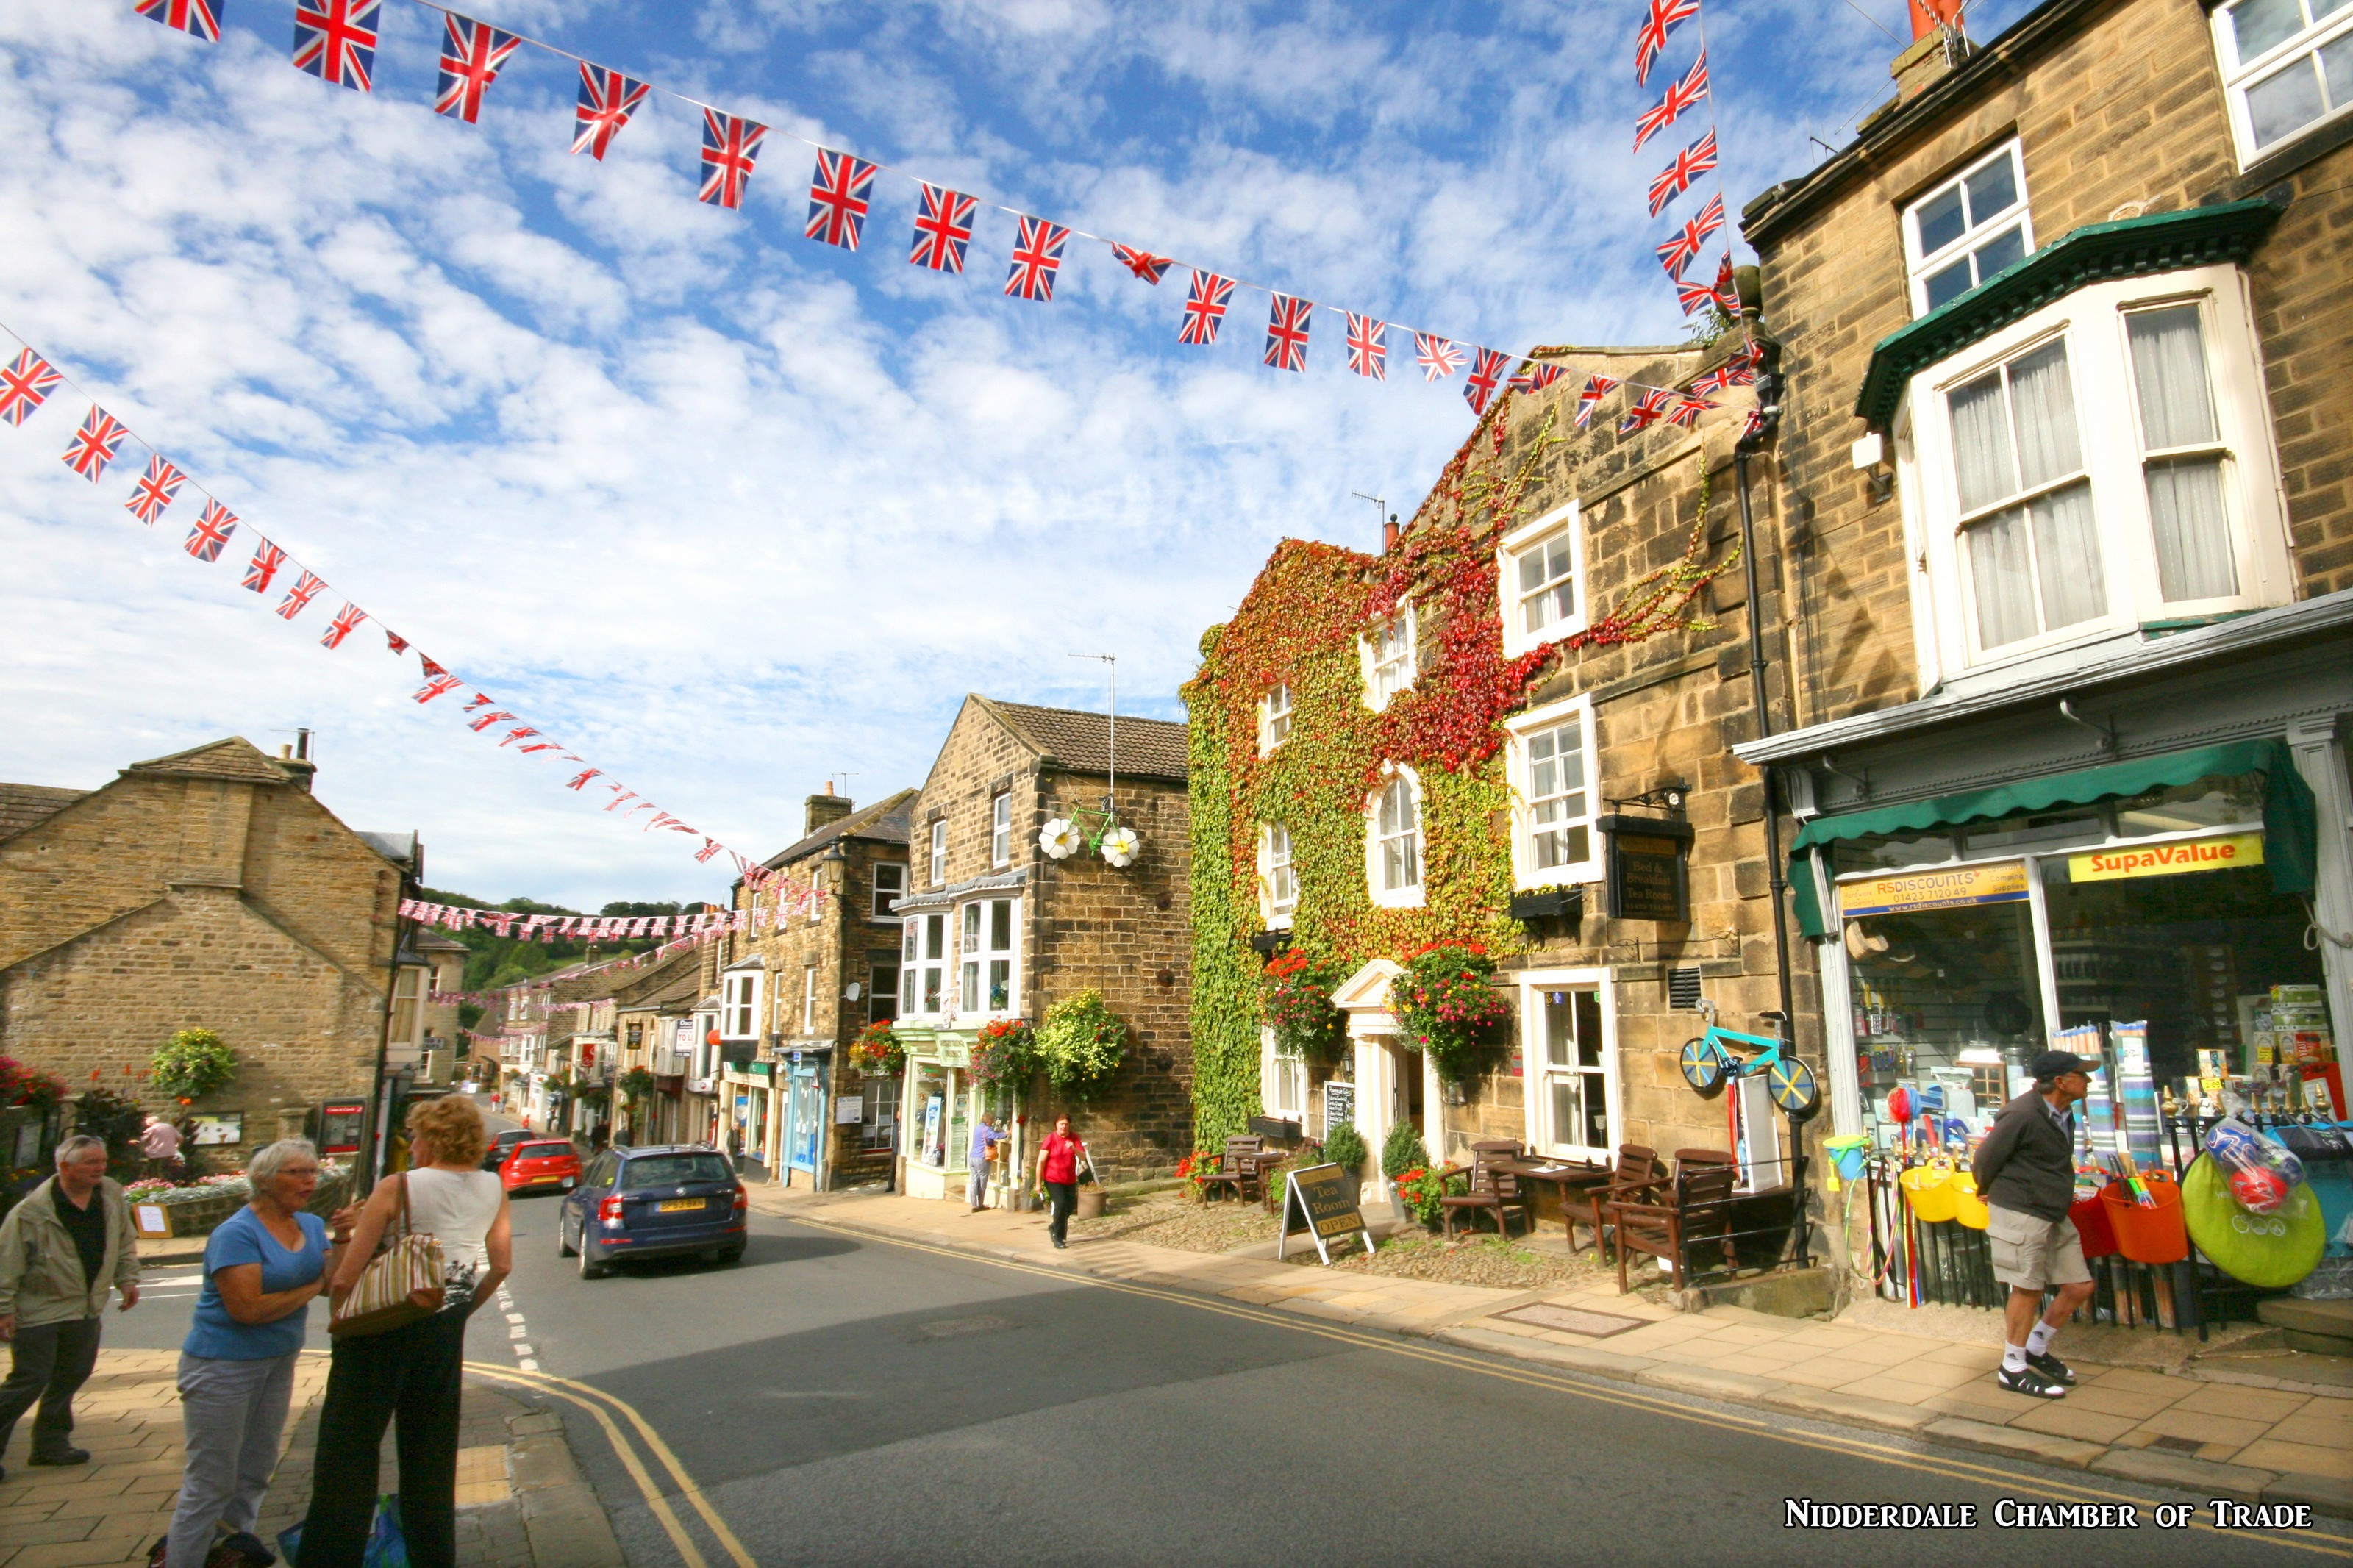 looking down Pateley Bridge High Street nidd chamber